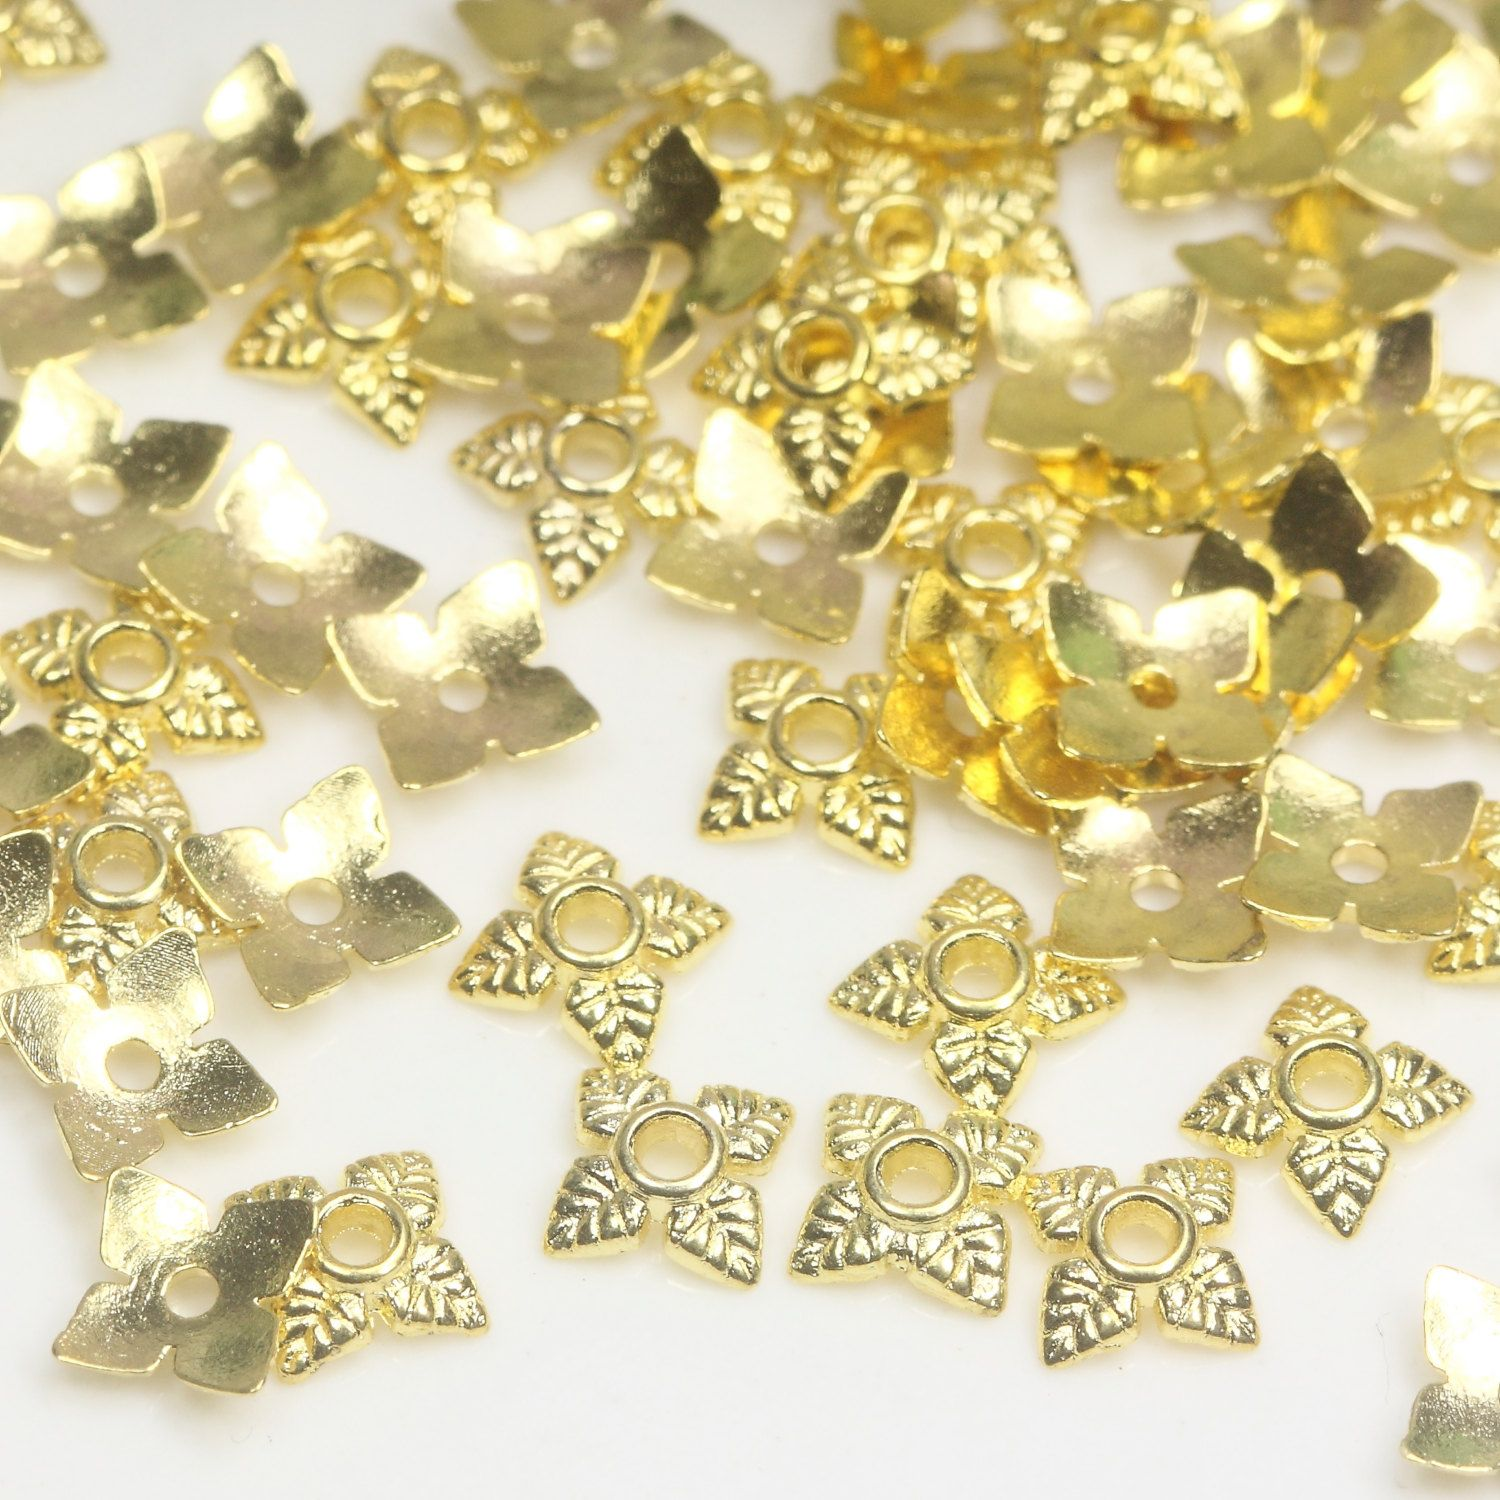 6mm Gold Bead Caps Small Flower Bead Caps Tibetan Bead Caps Bead